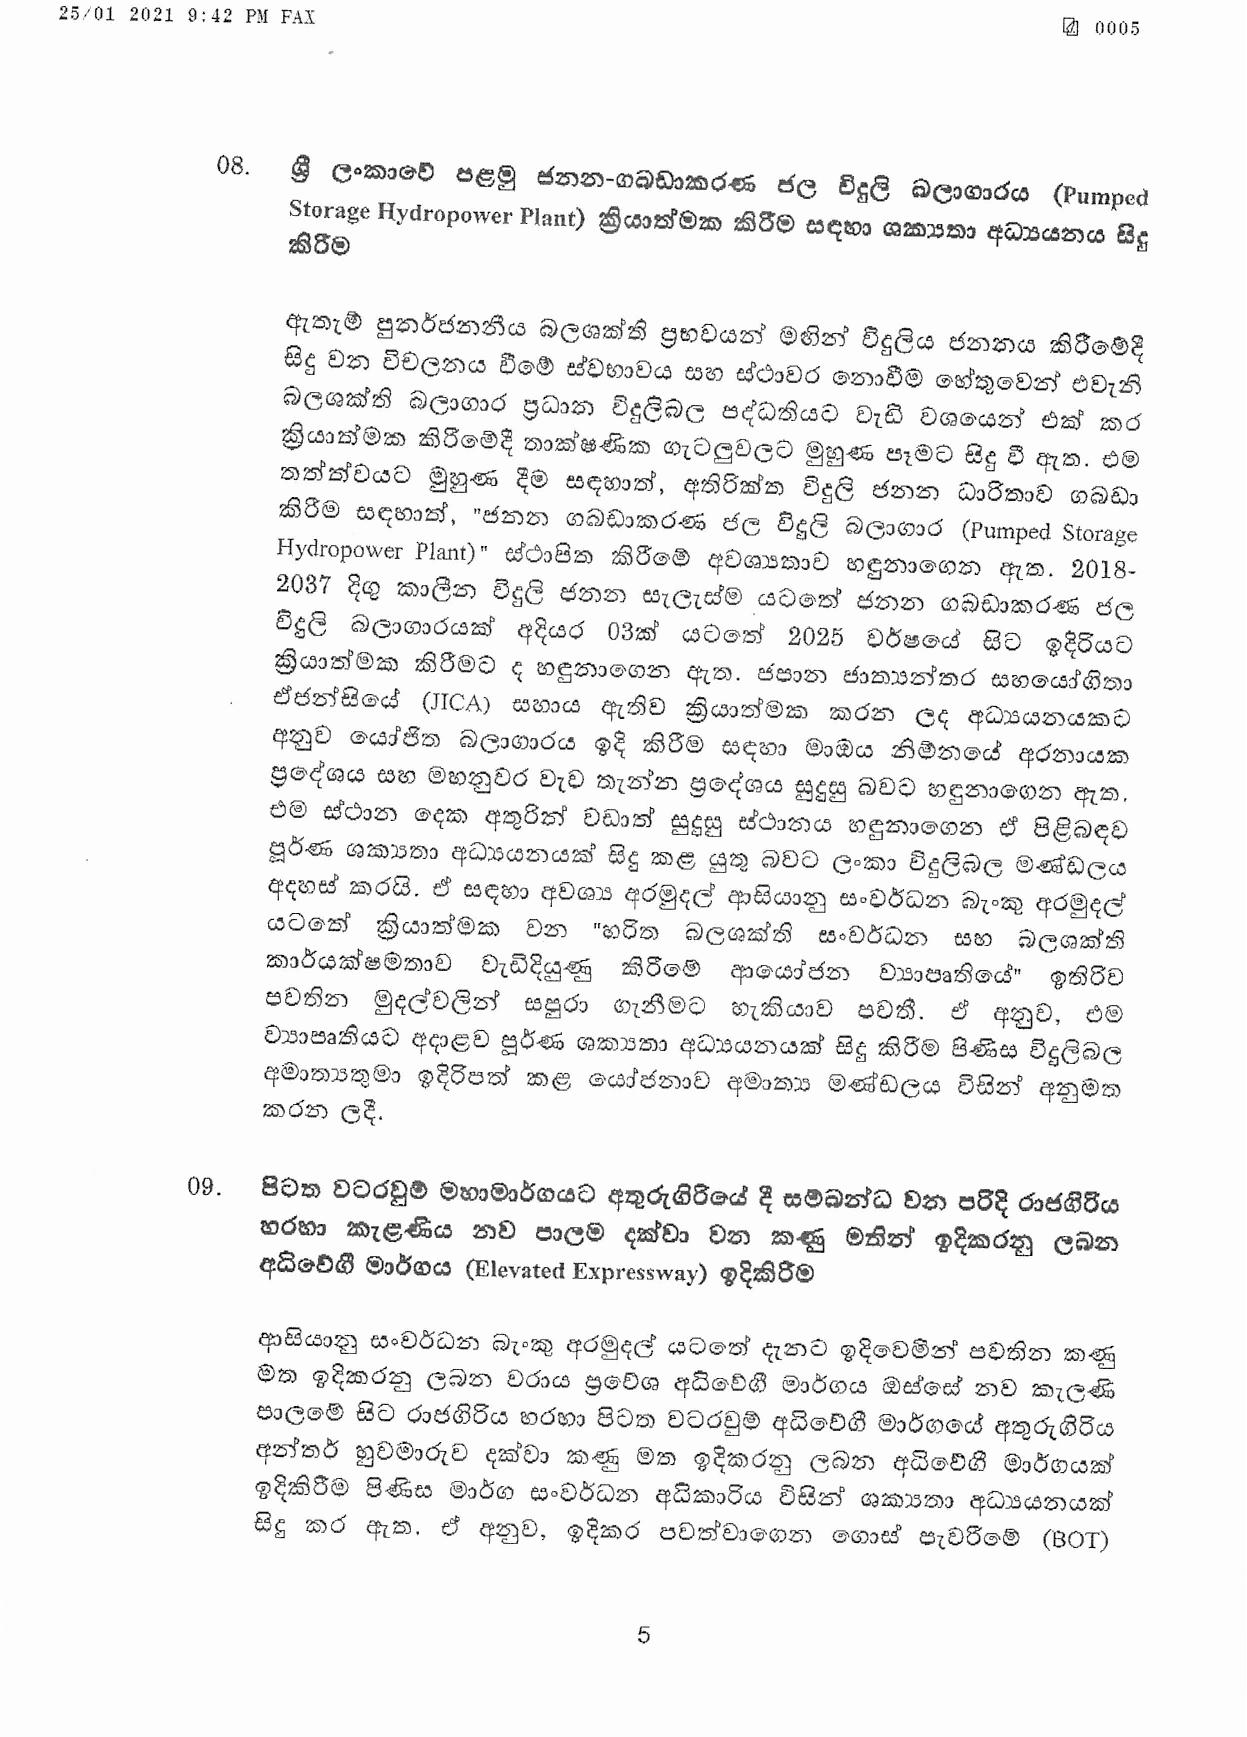 Cabinet Decision on 25.01.2021 page 005